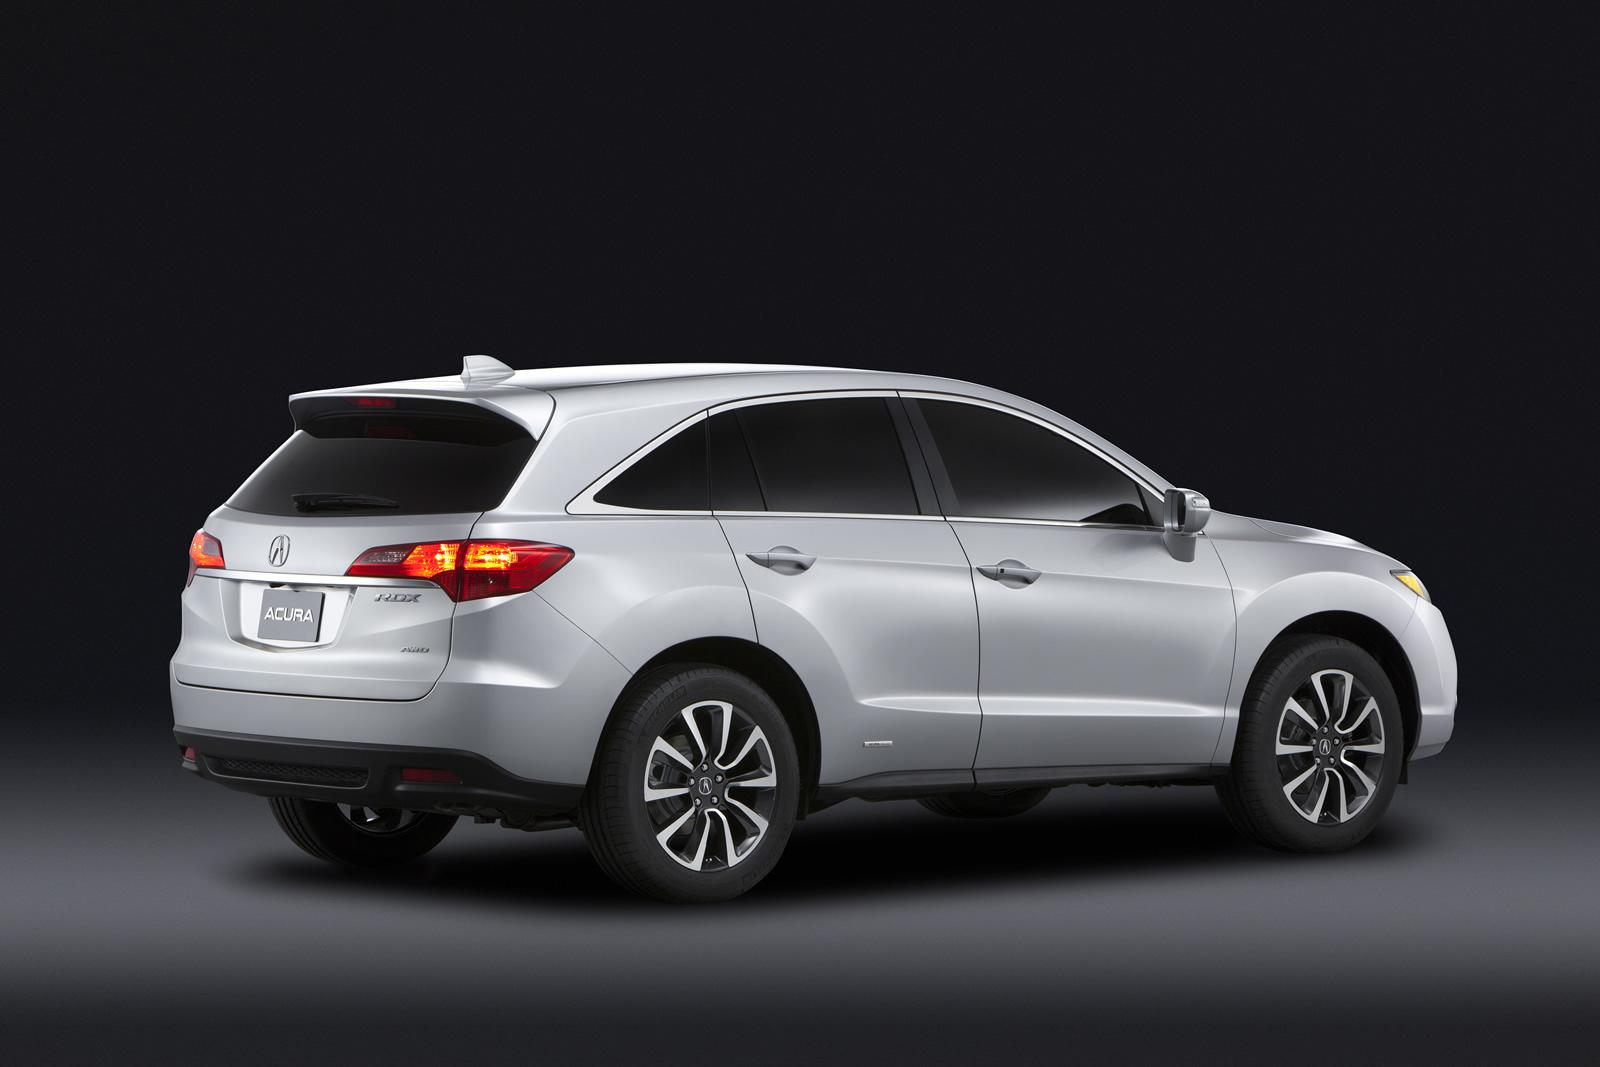 2013 Acura RDX 1 2013 Acura ILX & RDX   to Be Launched for Sale